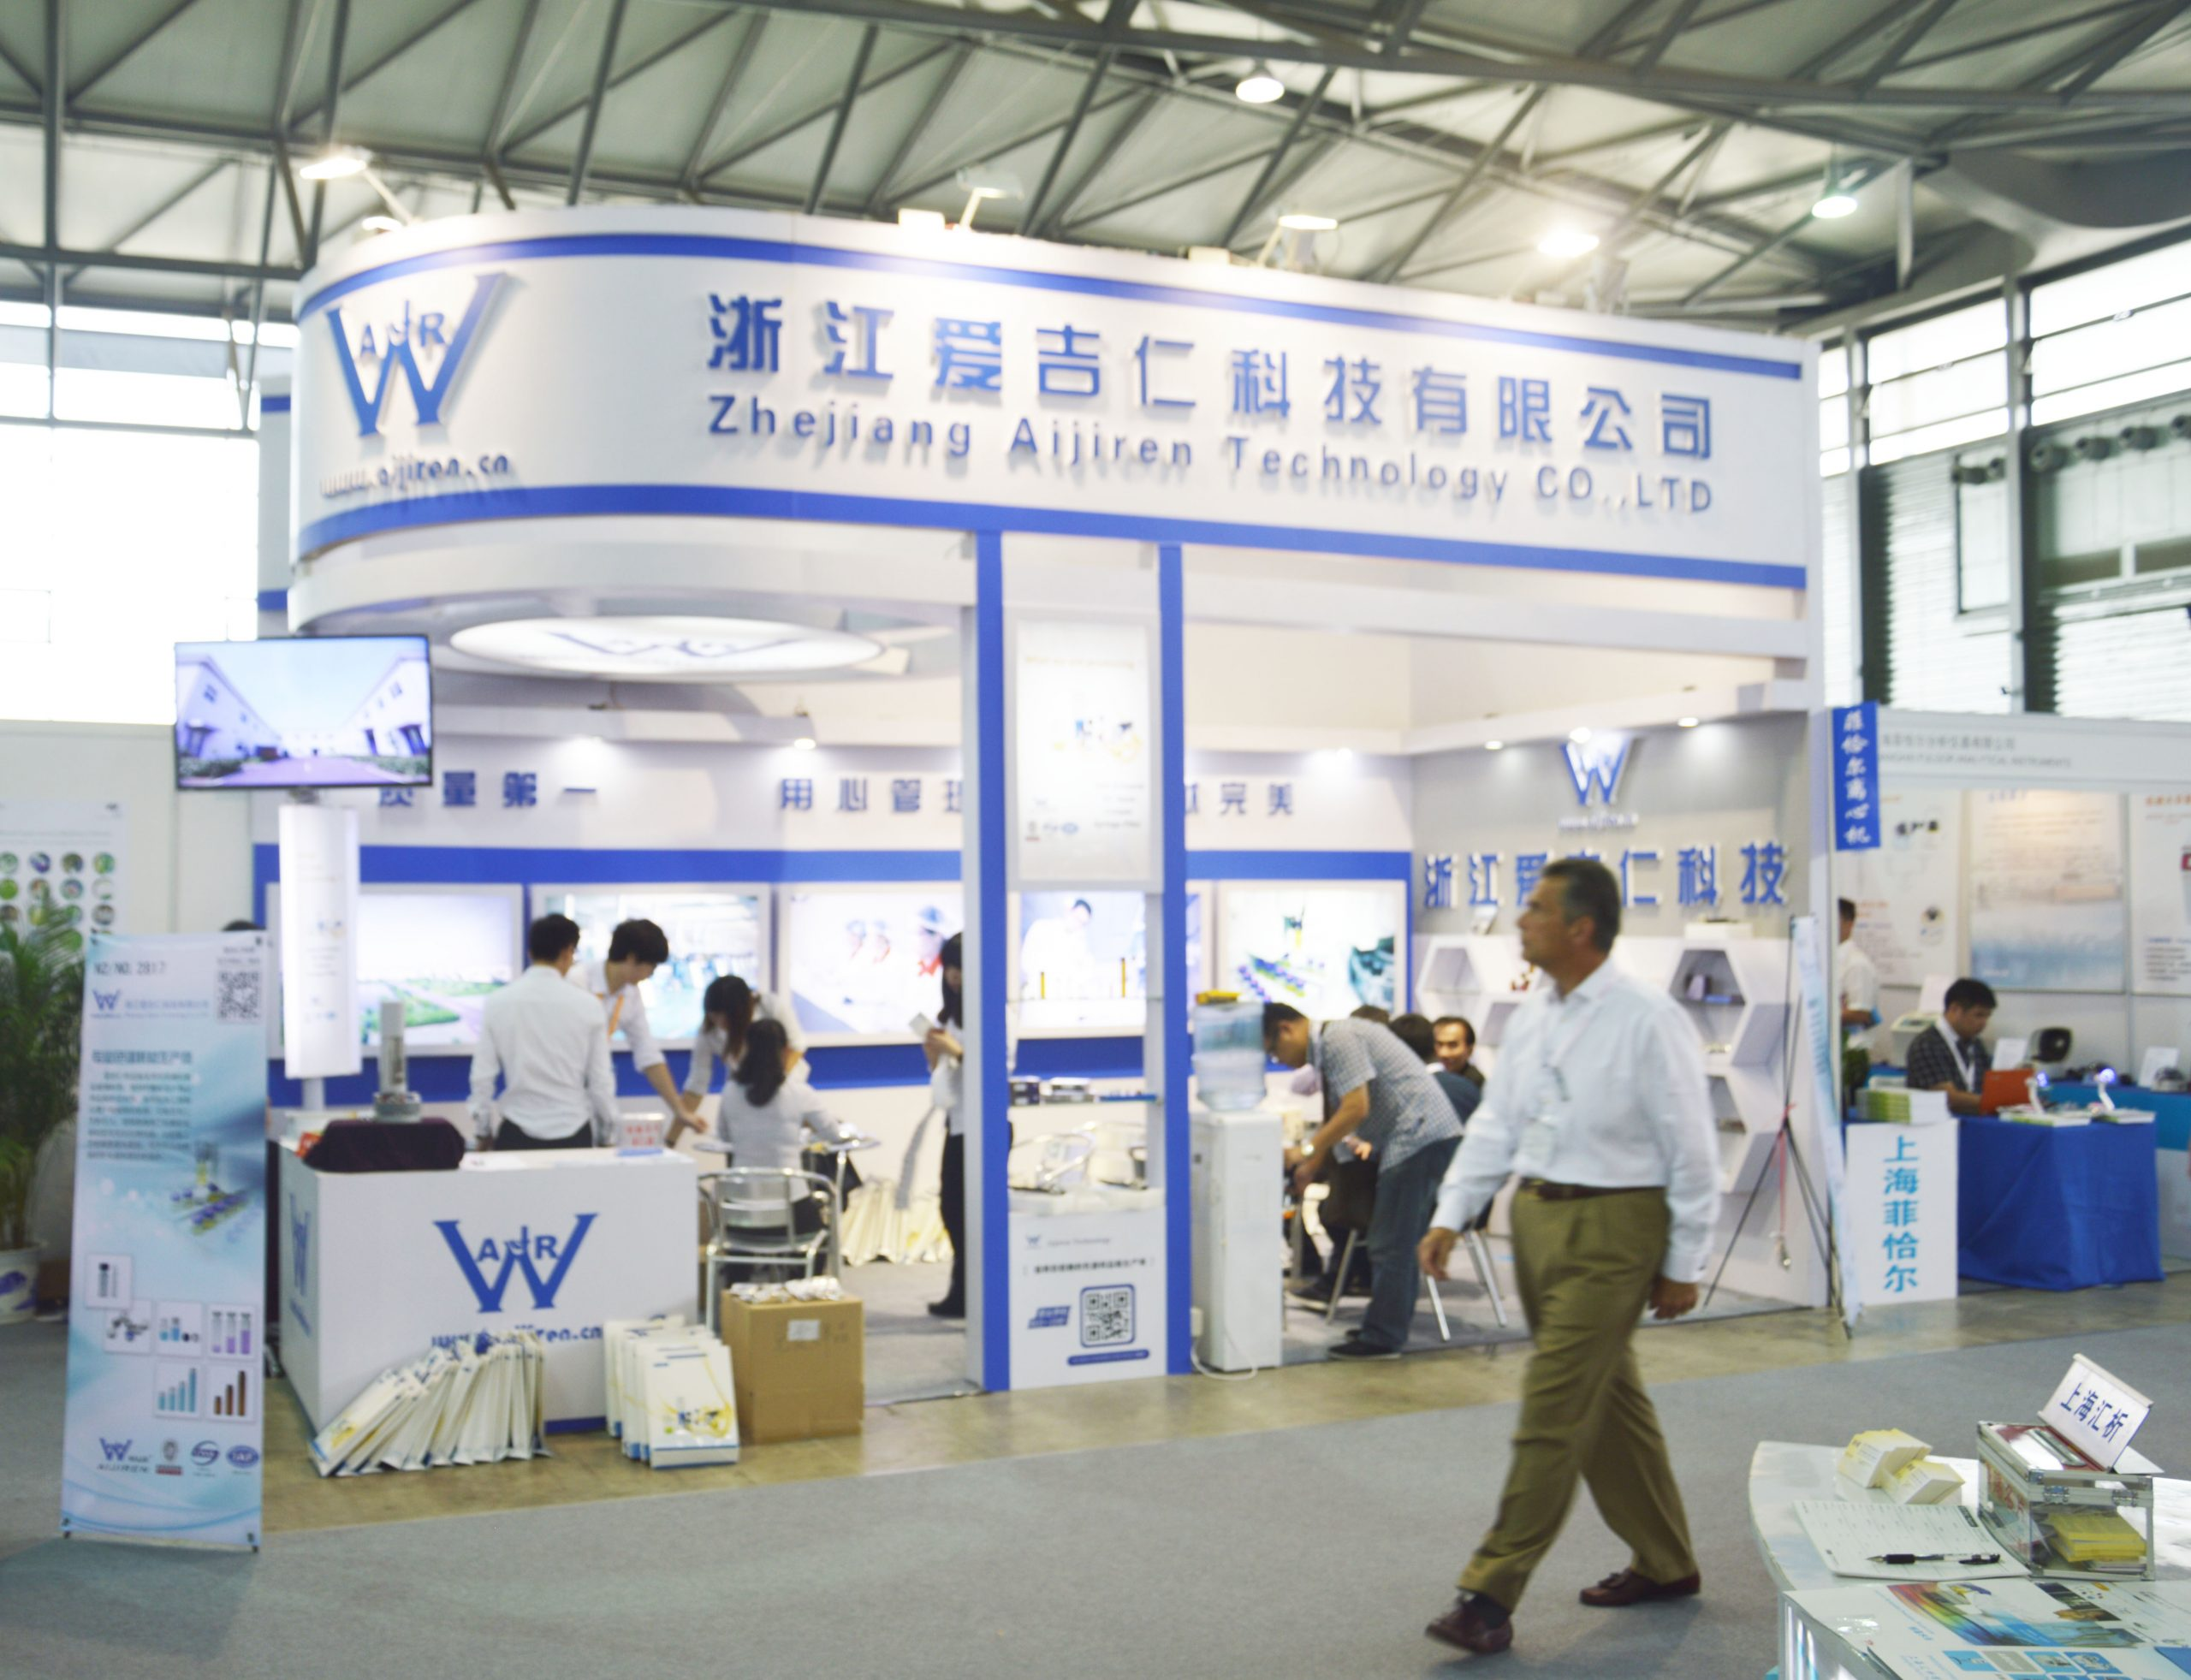 Autosampler VialAijiren Technology's perfect curtain call Munich Analytica China Conference